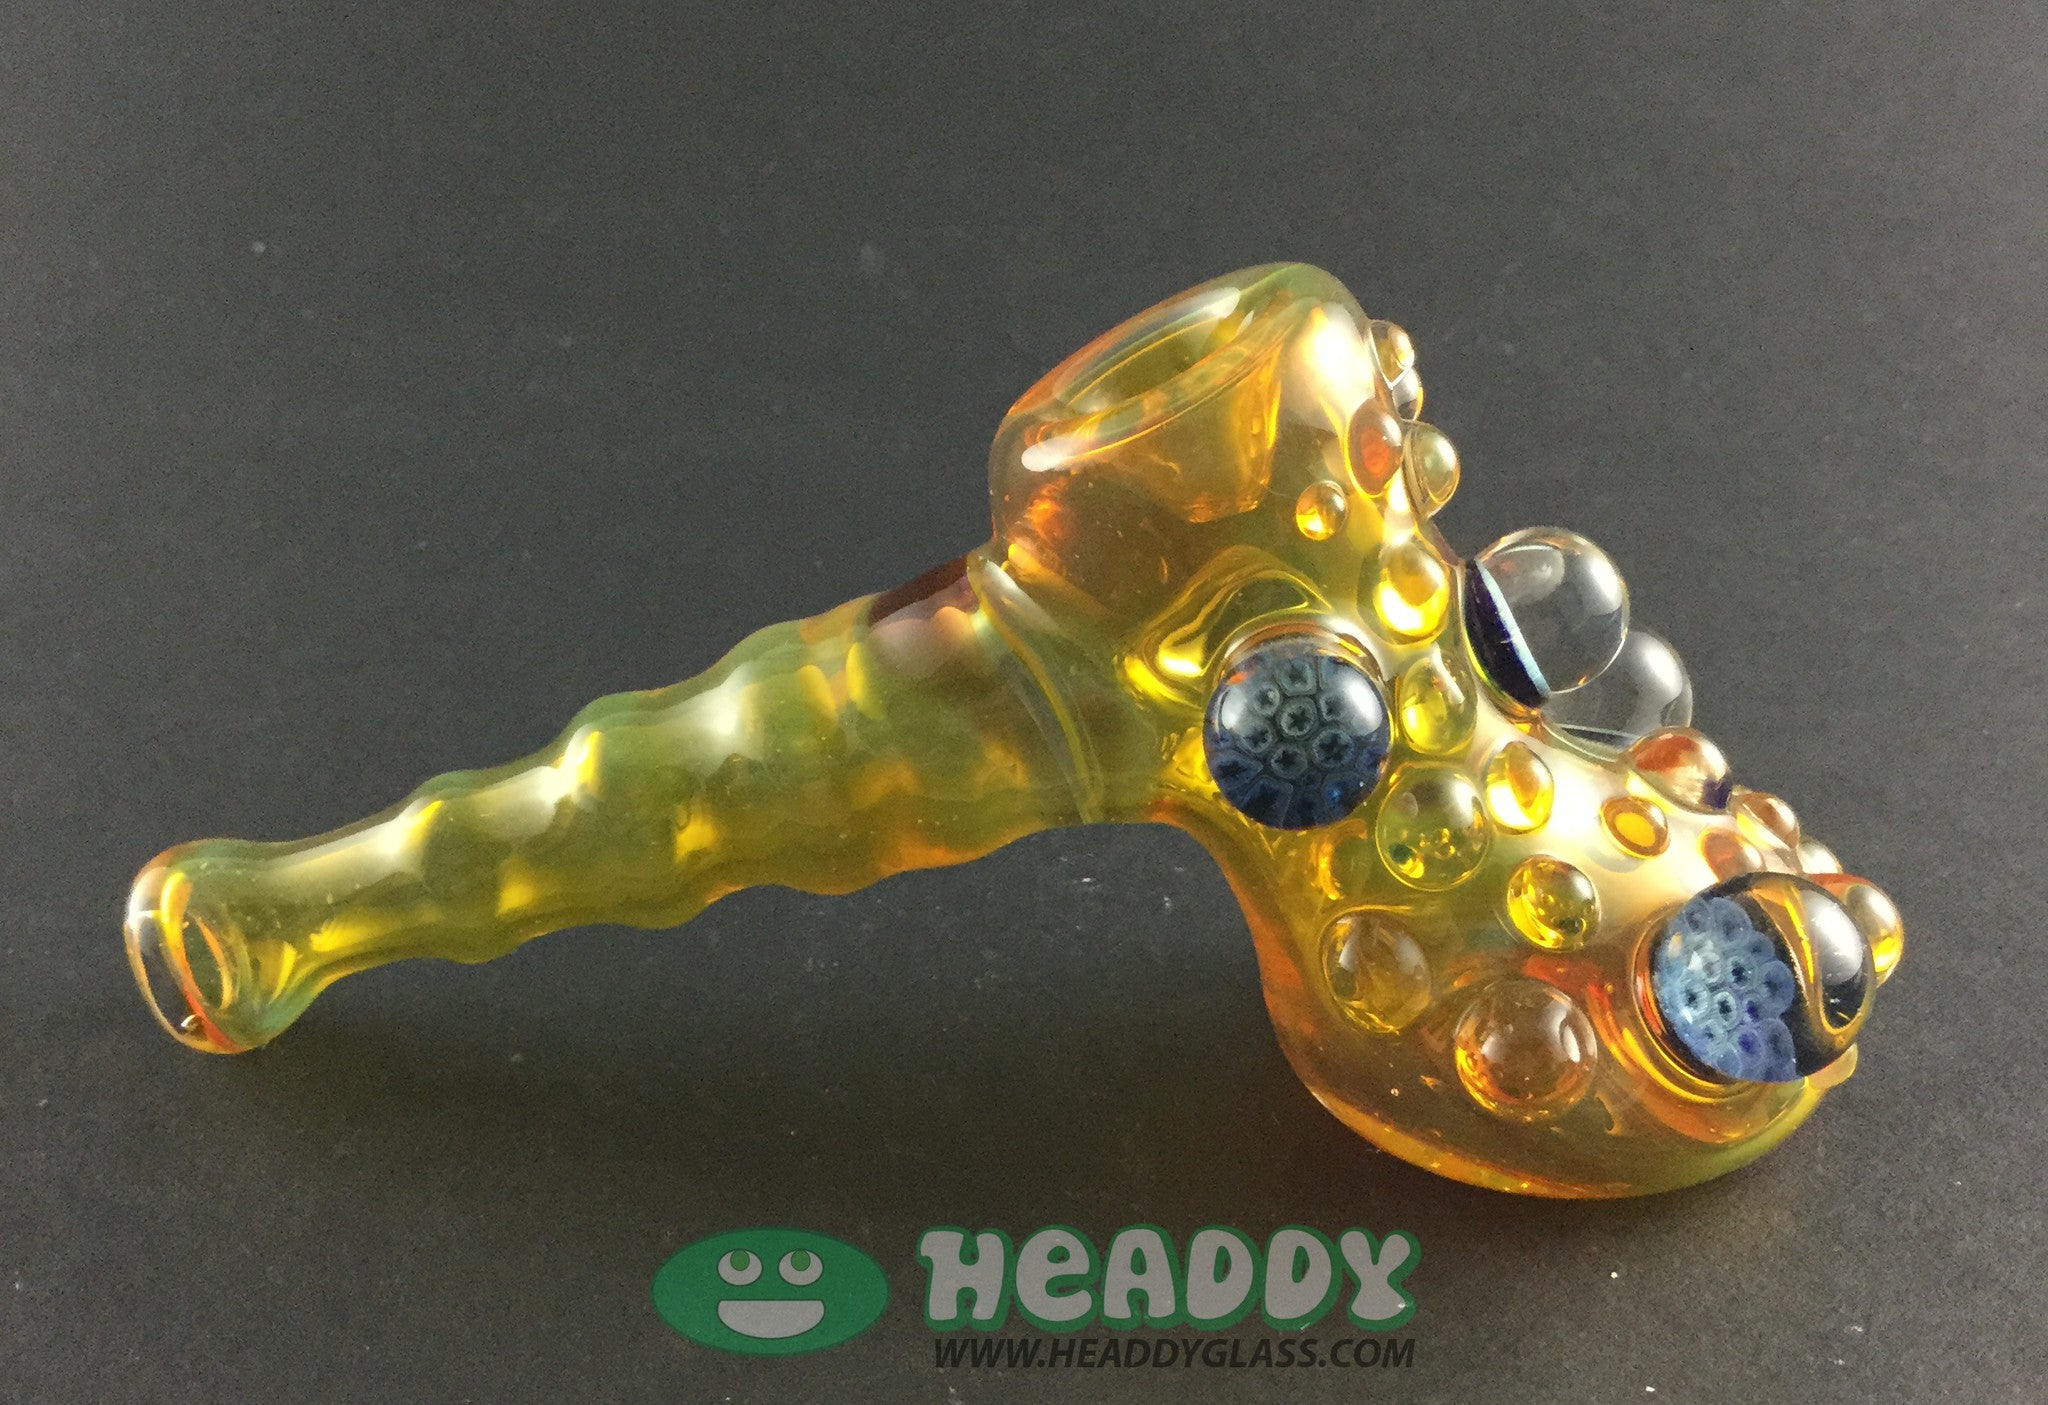 Raj Kommineni hammer - Headdy Glass